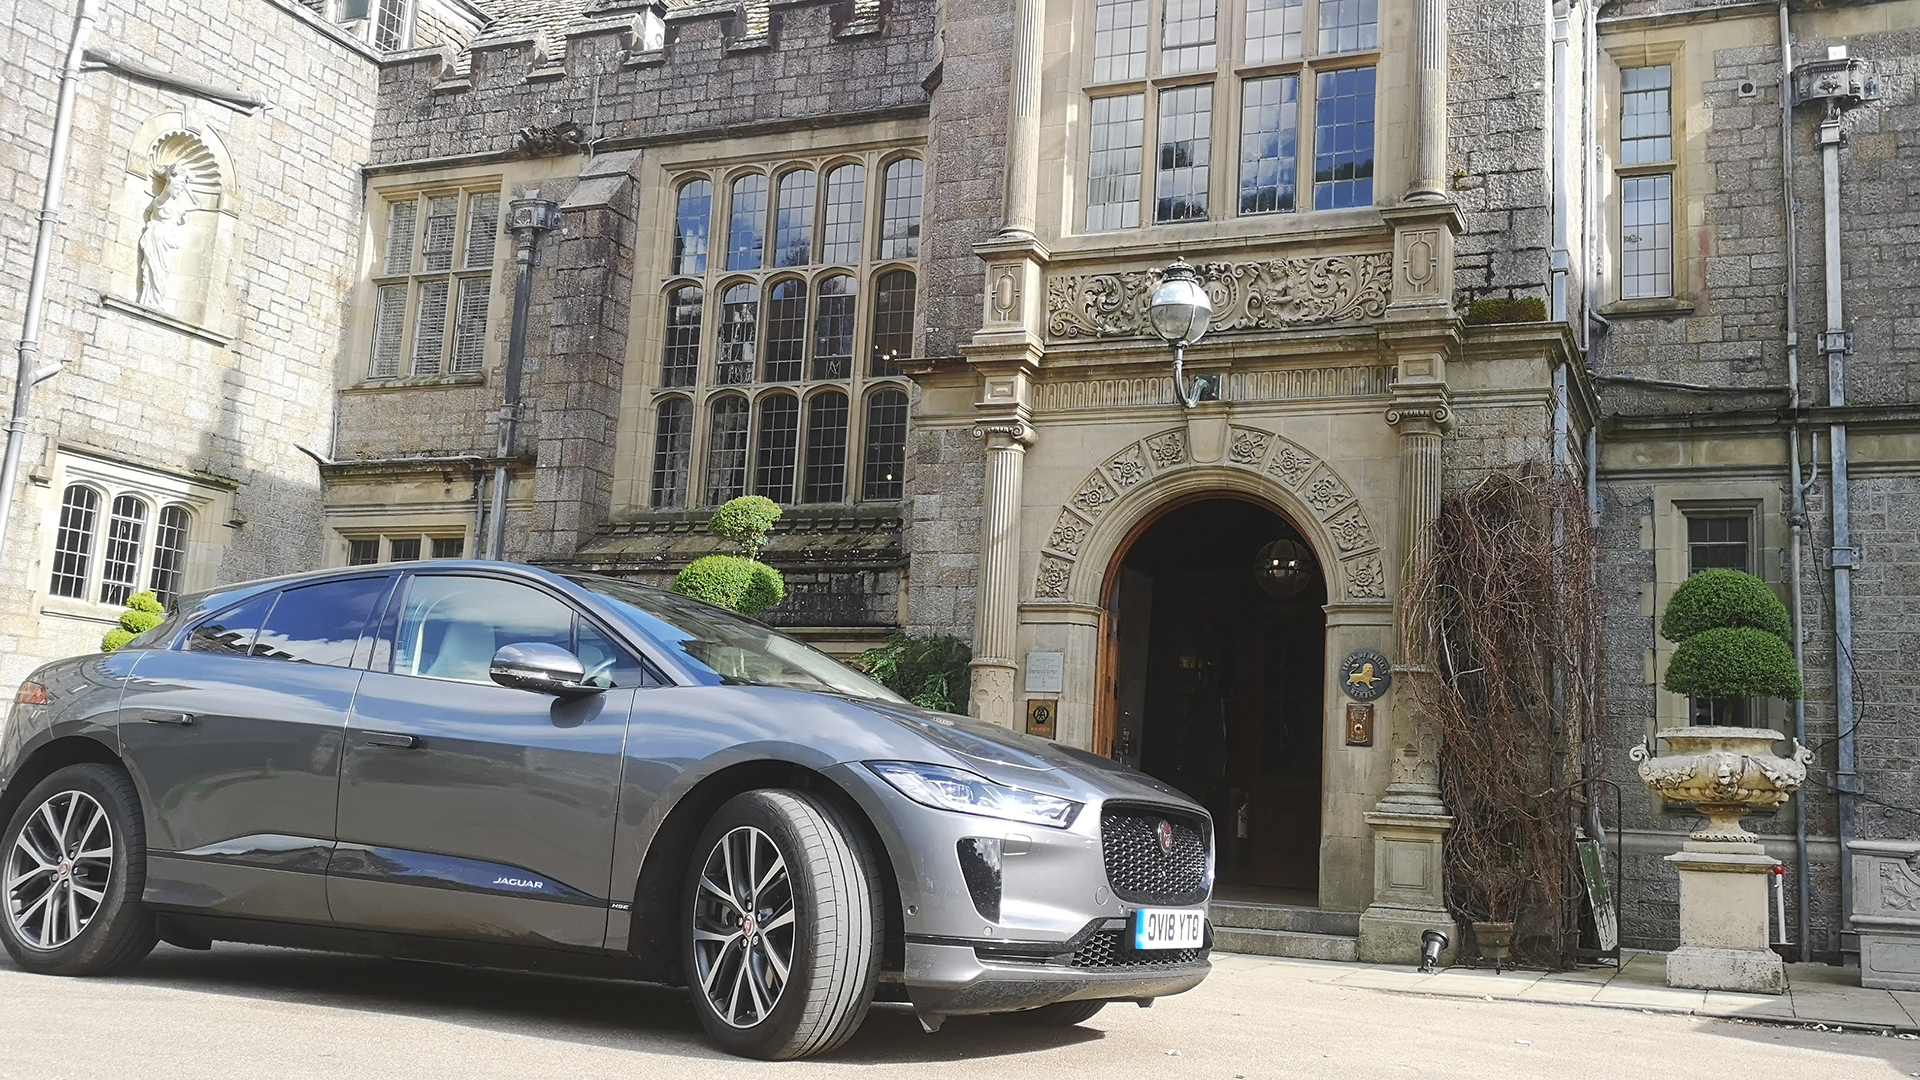 Jaguar I-PACE: pushed Lands End RftxskAxXZQc3ZjeUSGm